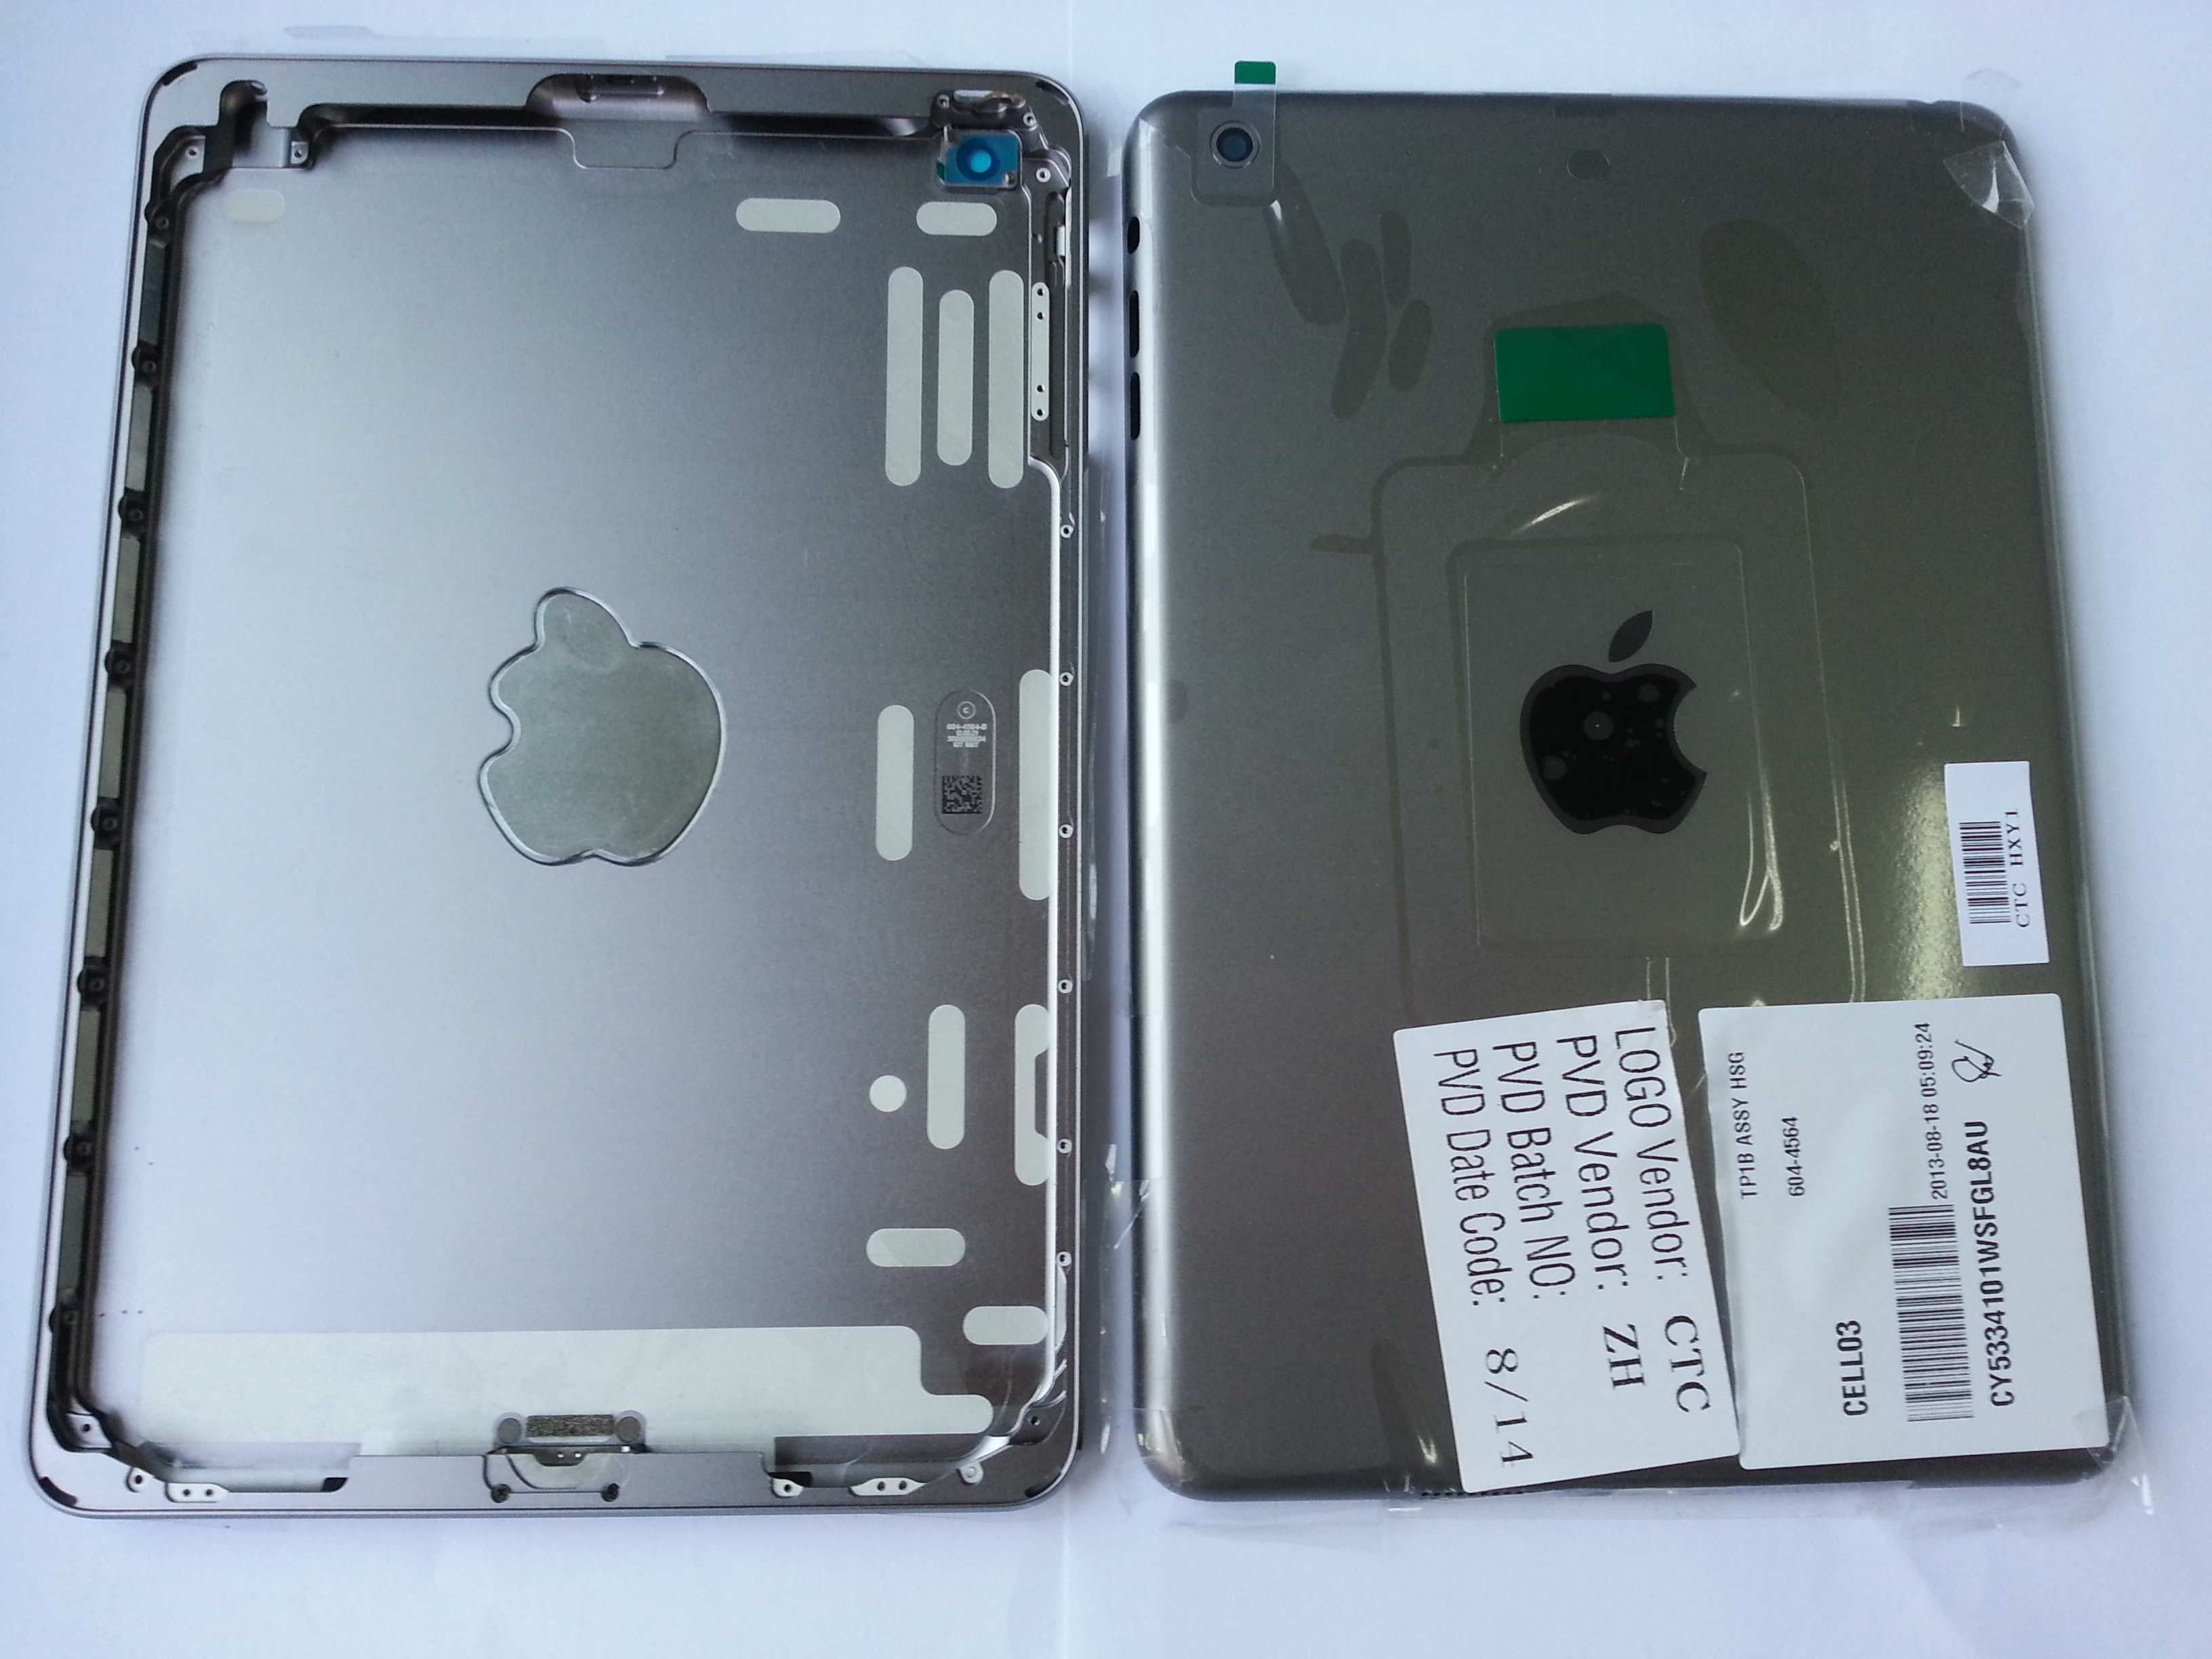 iPad-Mini-2-in-space-gray-examined-from-all-sides